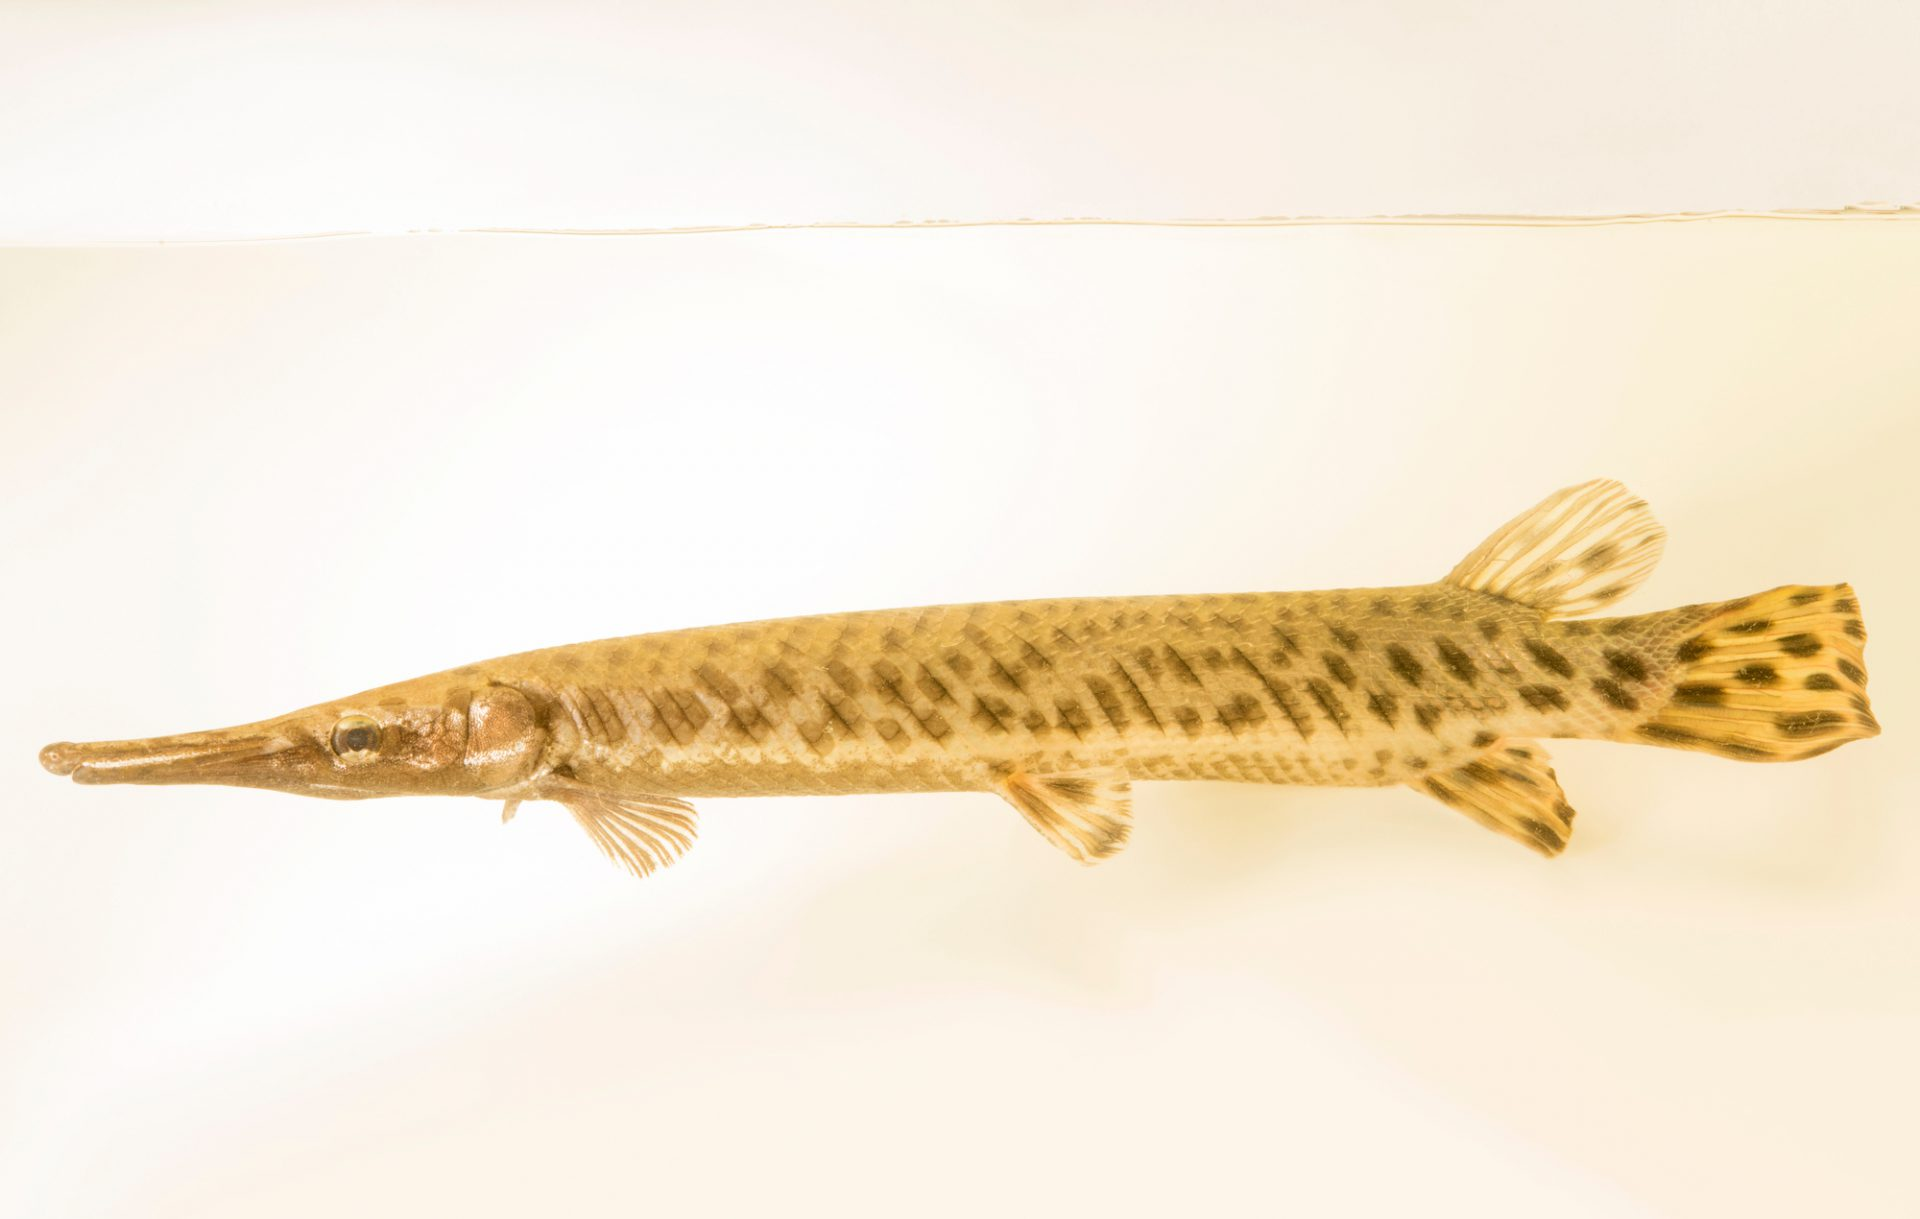 Photo: Spotted gar (Lepisosteus oculatus) at Welaka National Fish Hatchery Aquarium.